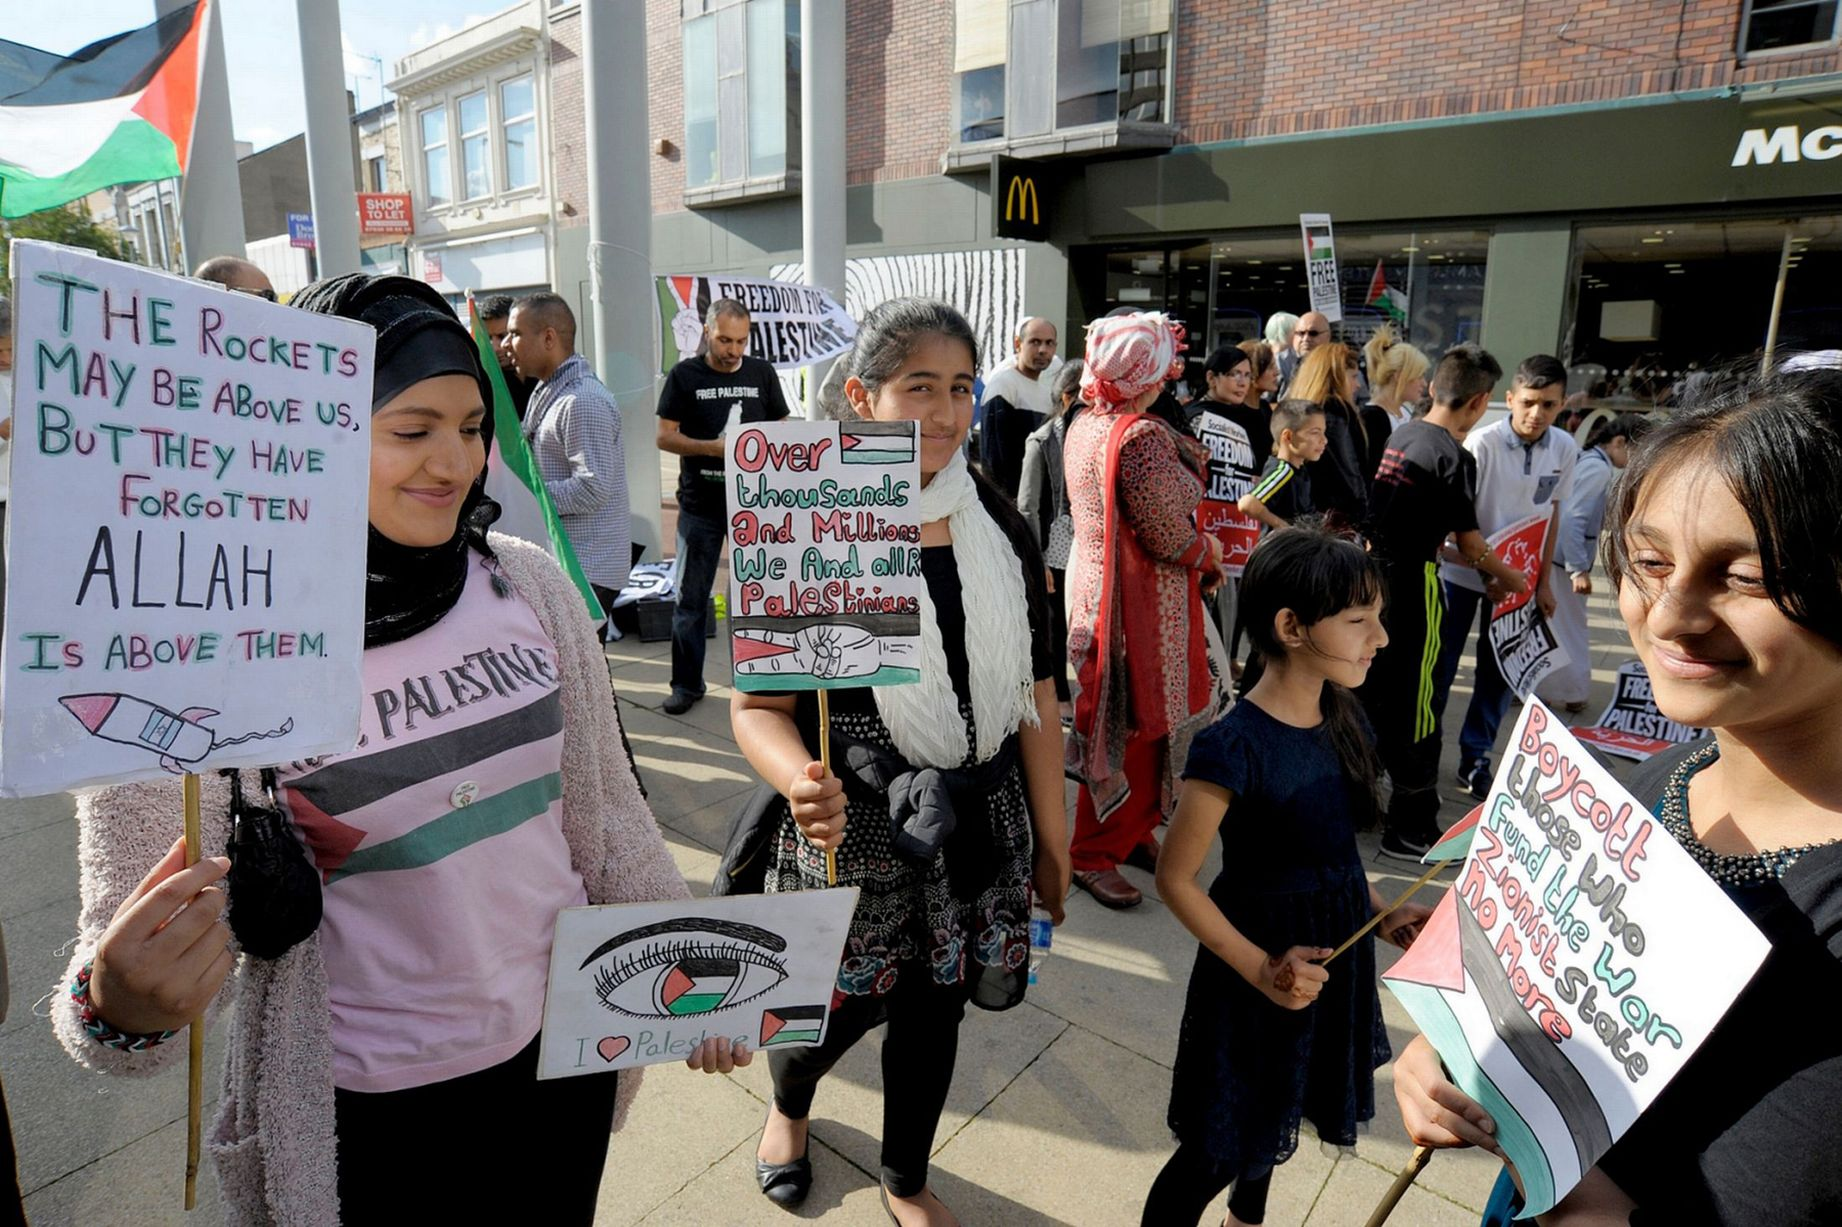 Palestine Solidarity vigil in Middlesbrough